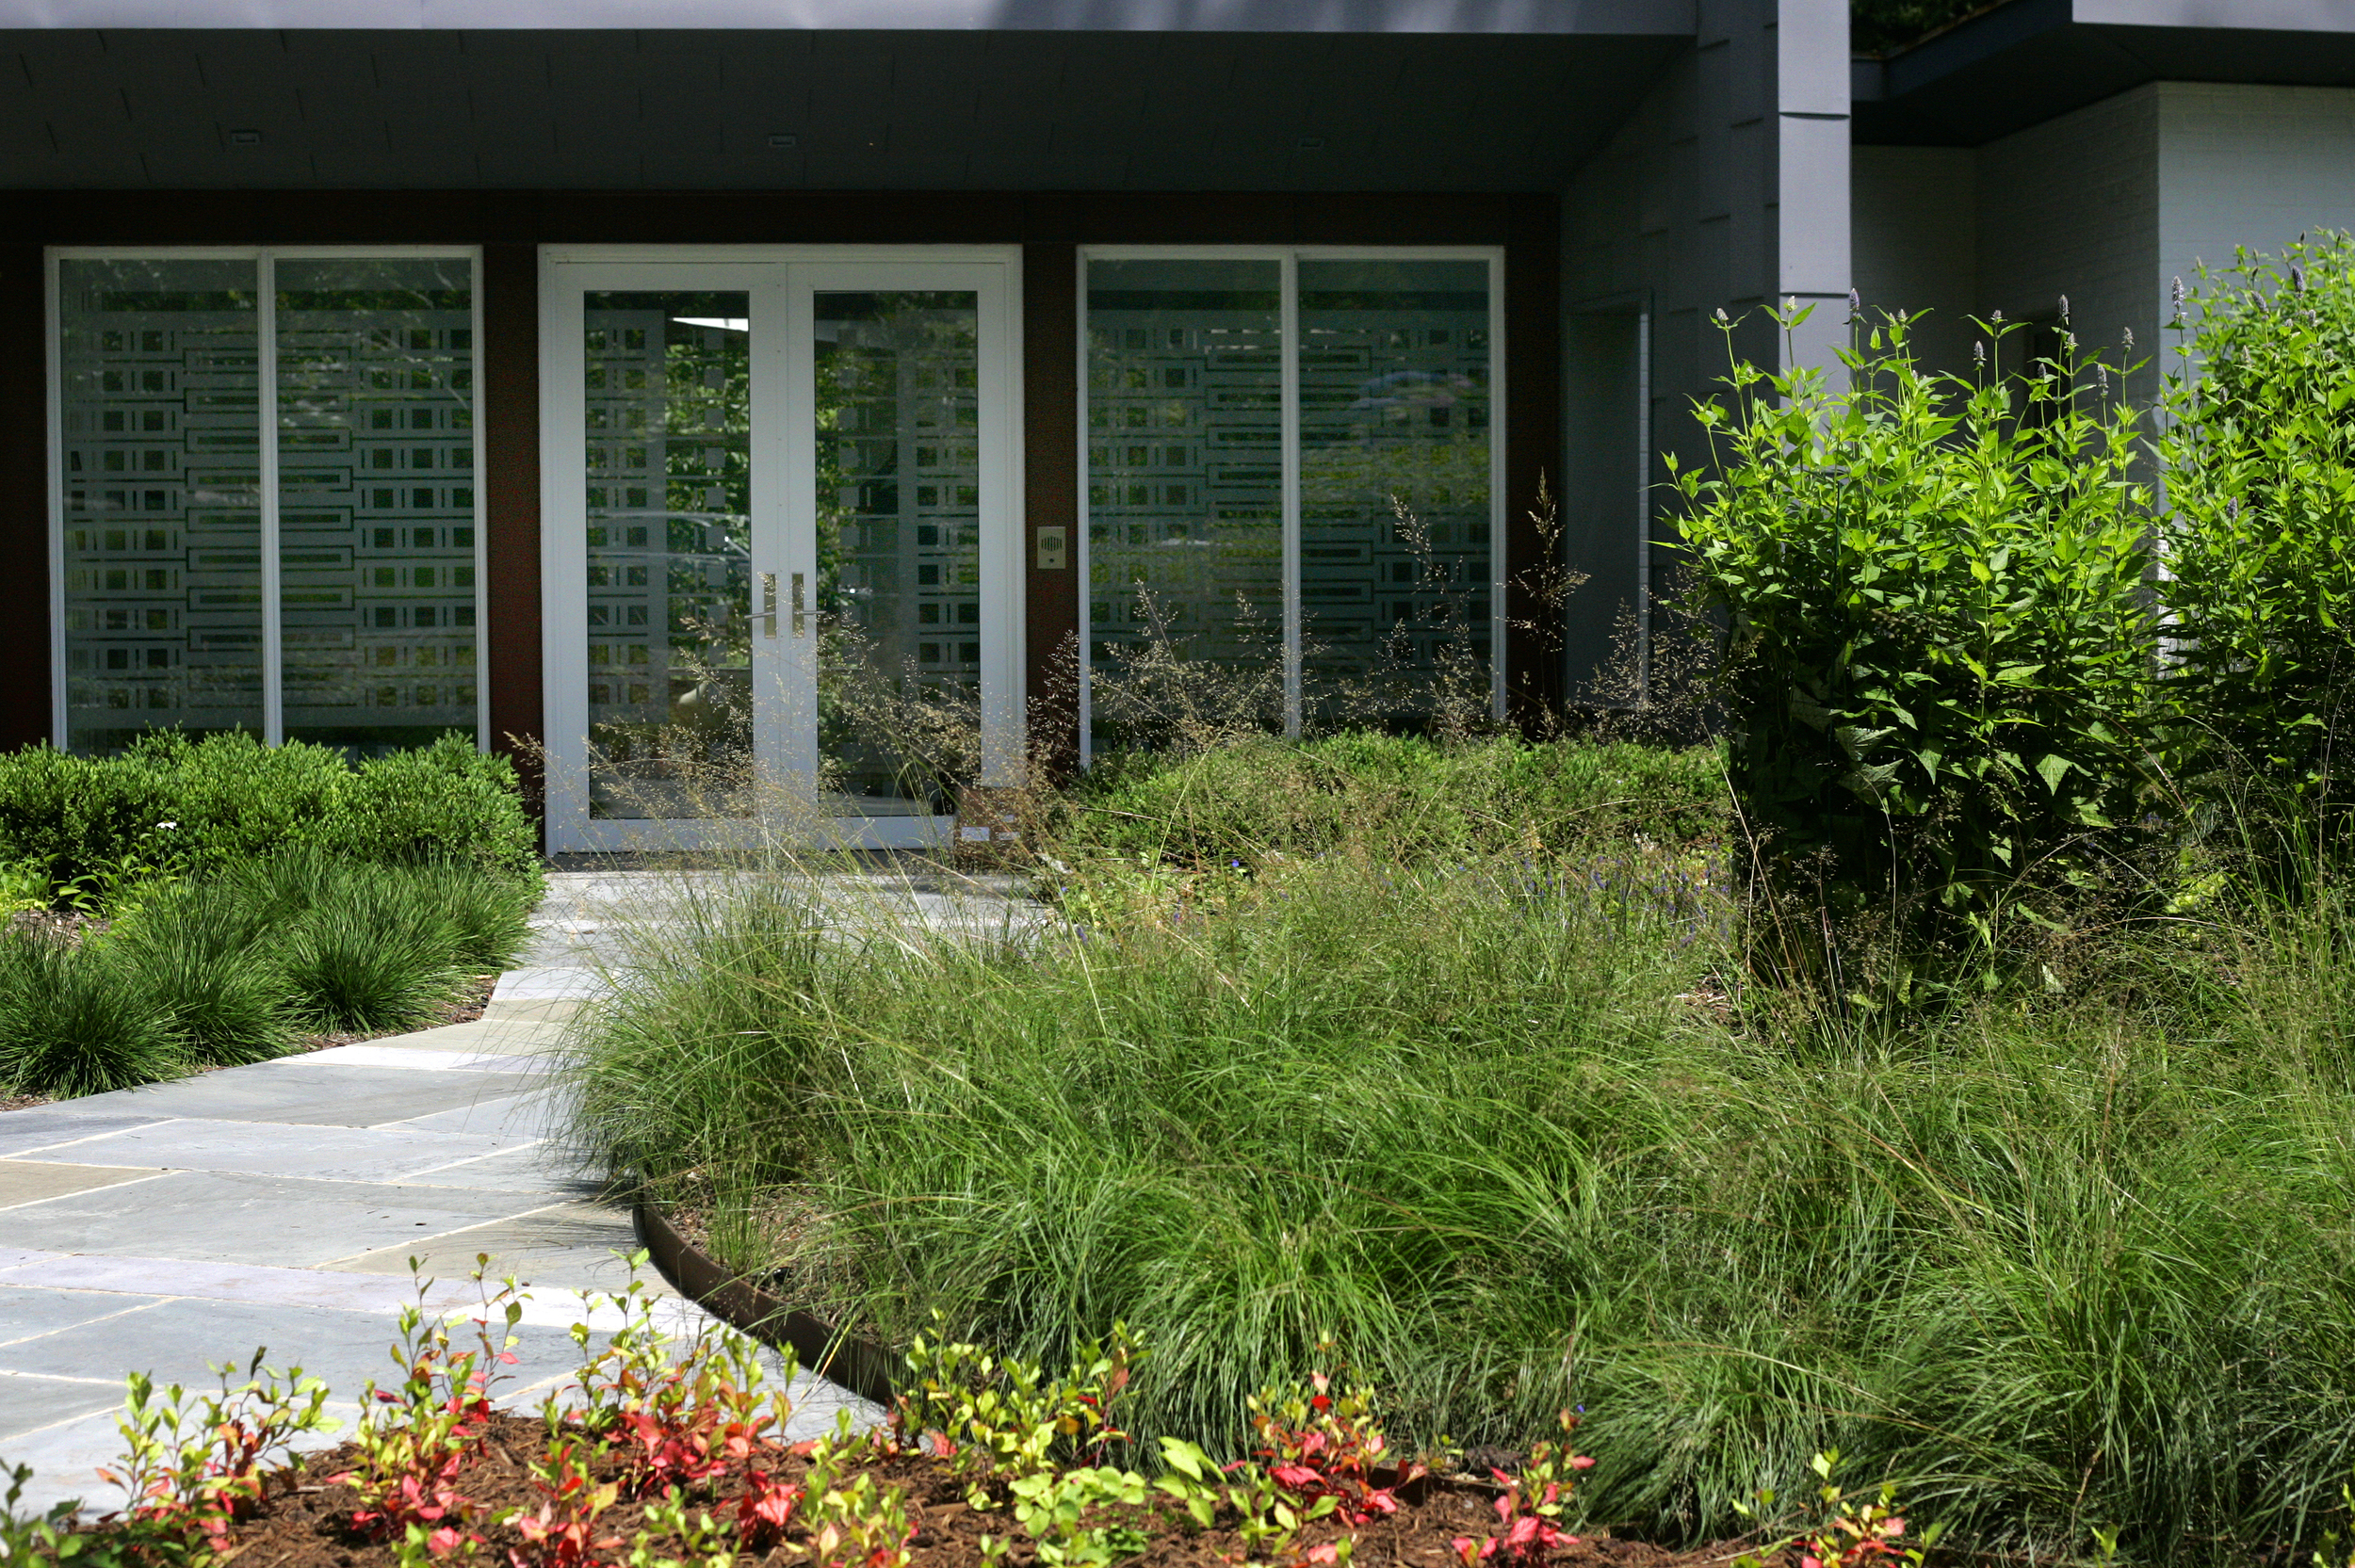 Project Location: Washington, DC (Forest Hills)  Completion: 2010  Landscape Contractors: Quarry Aquatics, Evergro Landscaping  Project Architect: Cunningham Quill  Primary Material Palette: bluestone  Photos By: Erica Thum